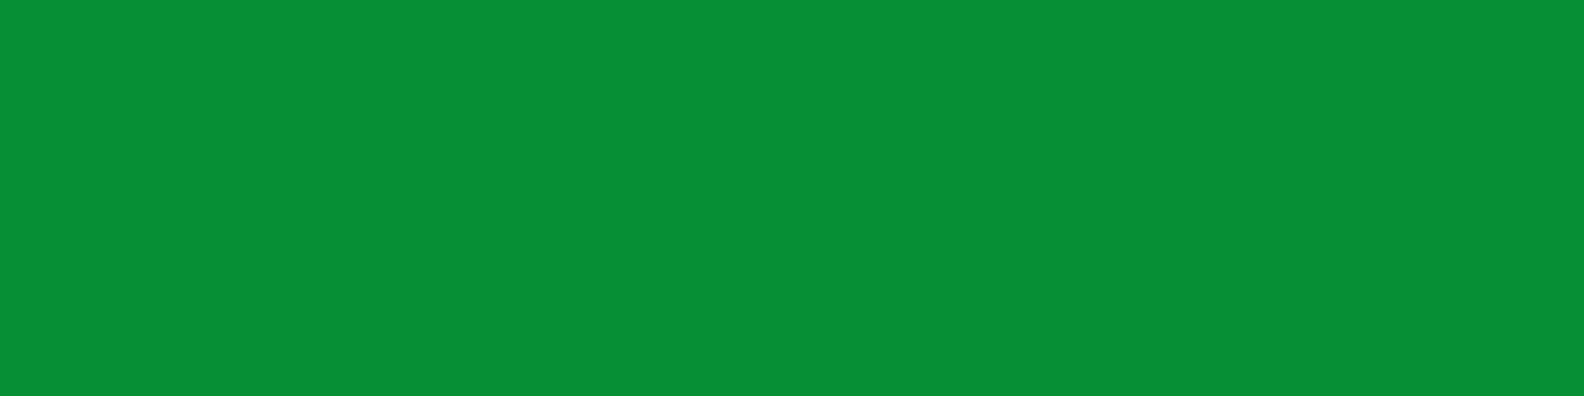 1584x396 North Texas Green Solid Color Background